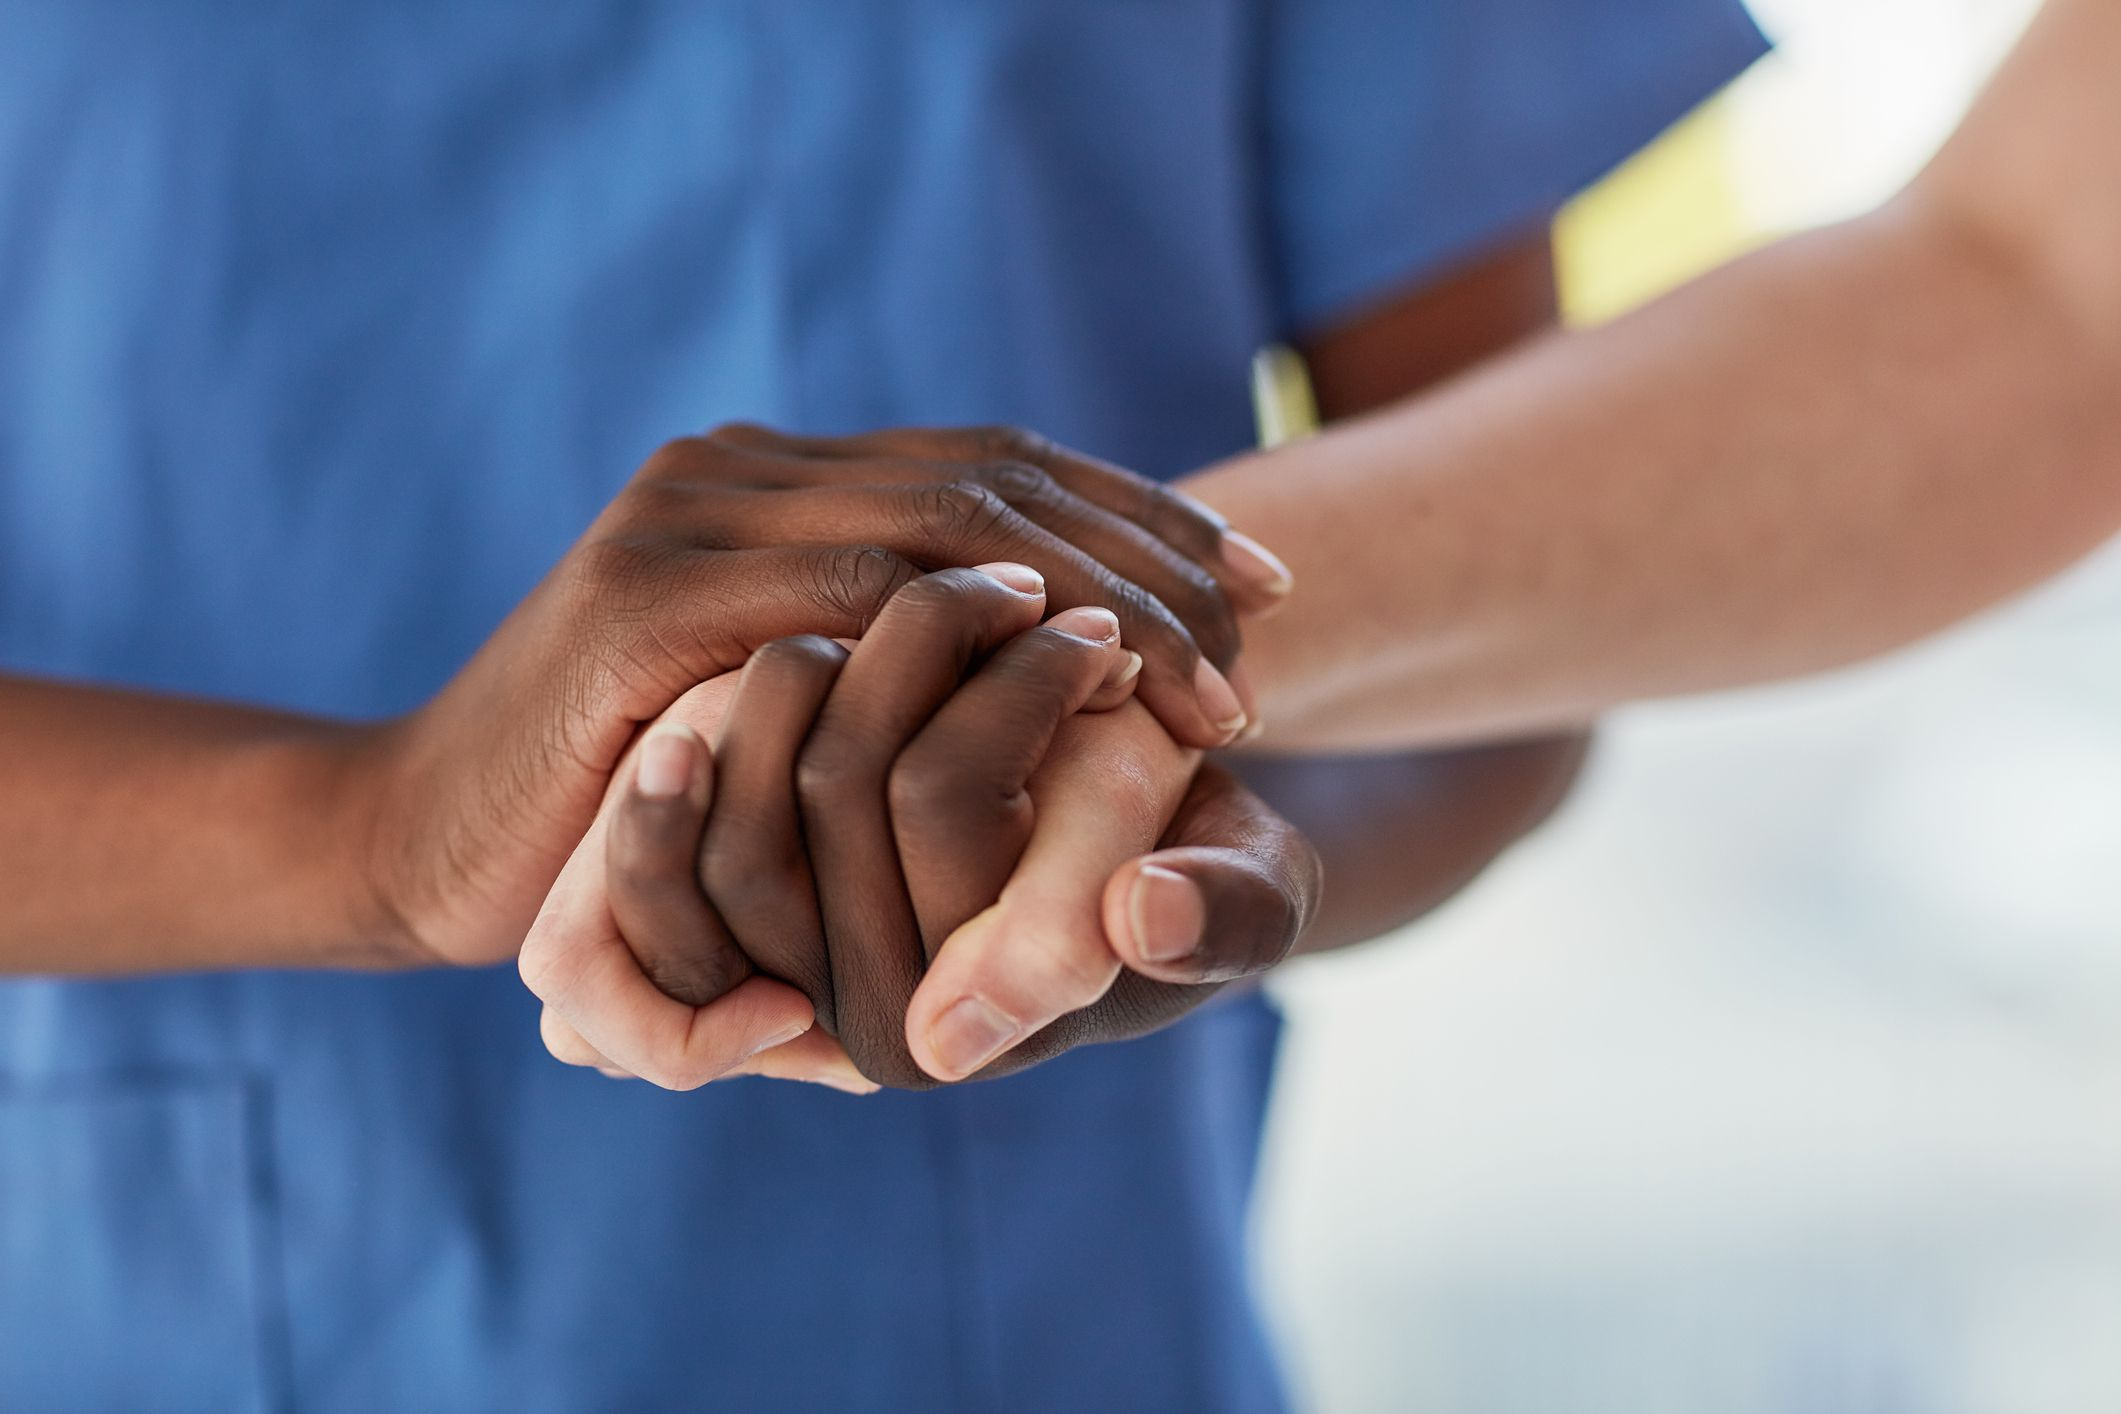 Helping a Patient With English for Medical Purposes